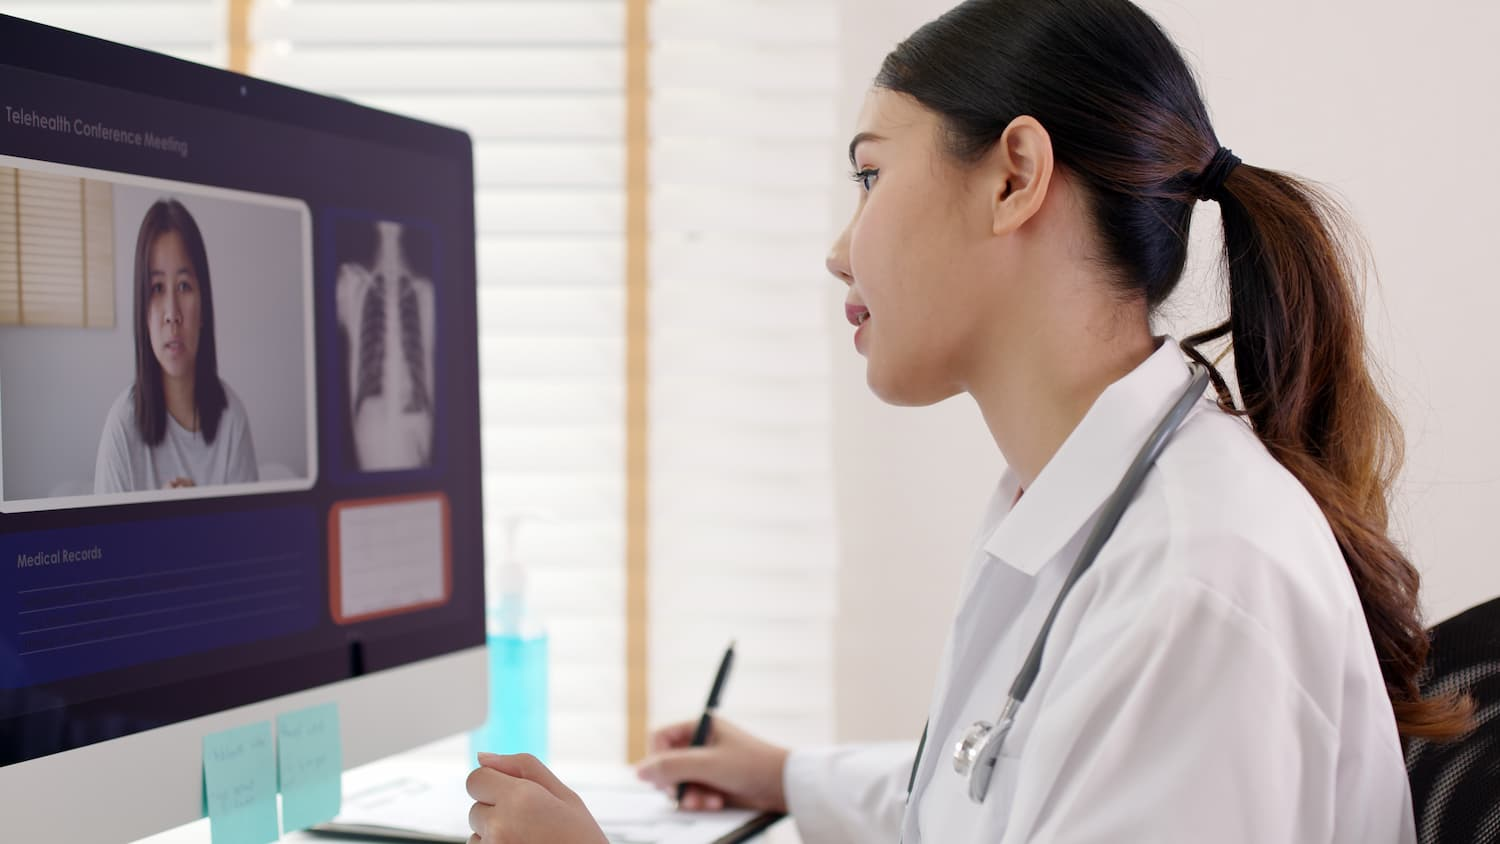 The Rapid Growth of Telemedicine Startups to Combat COVID-19